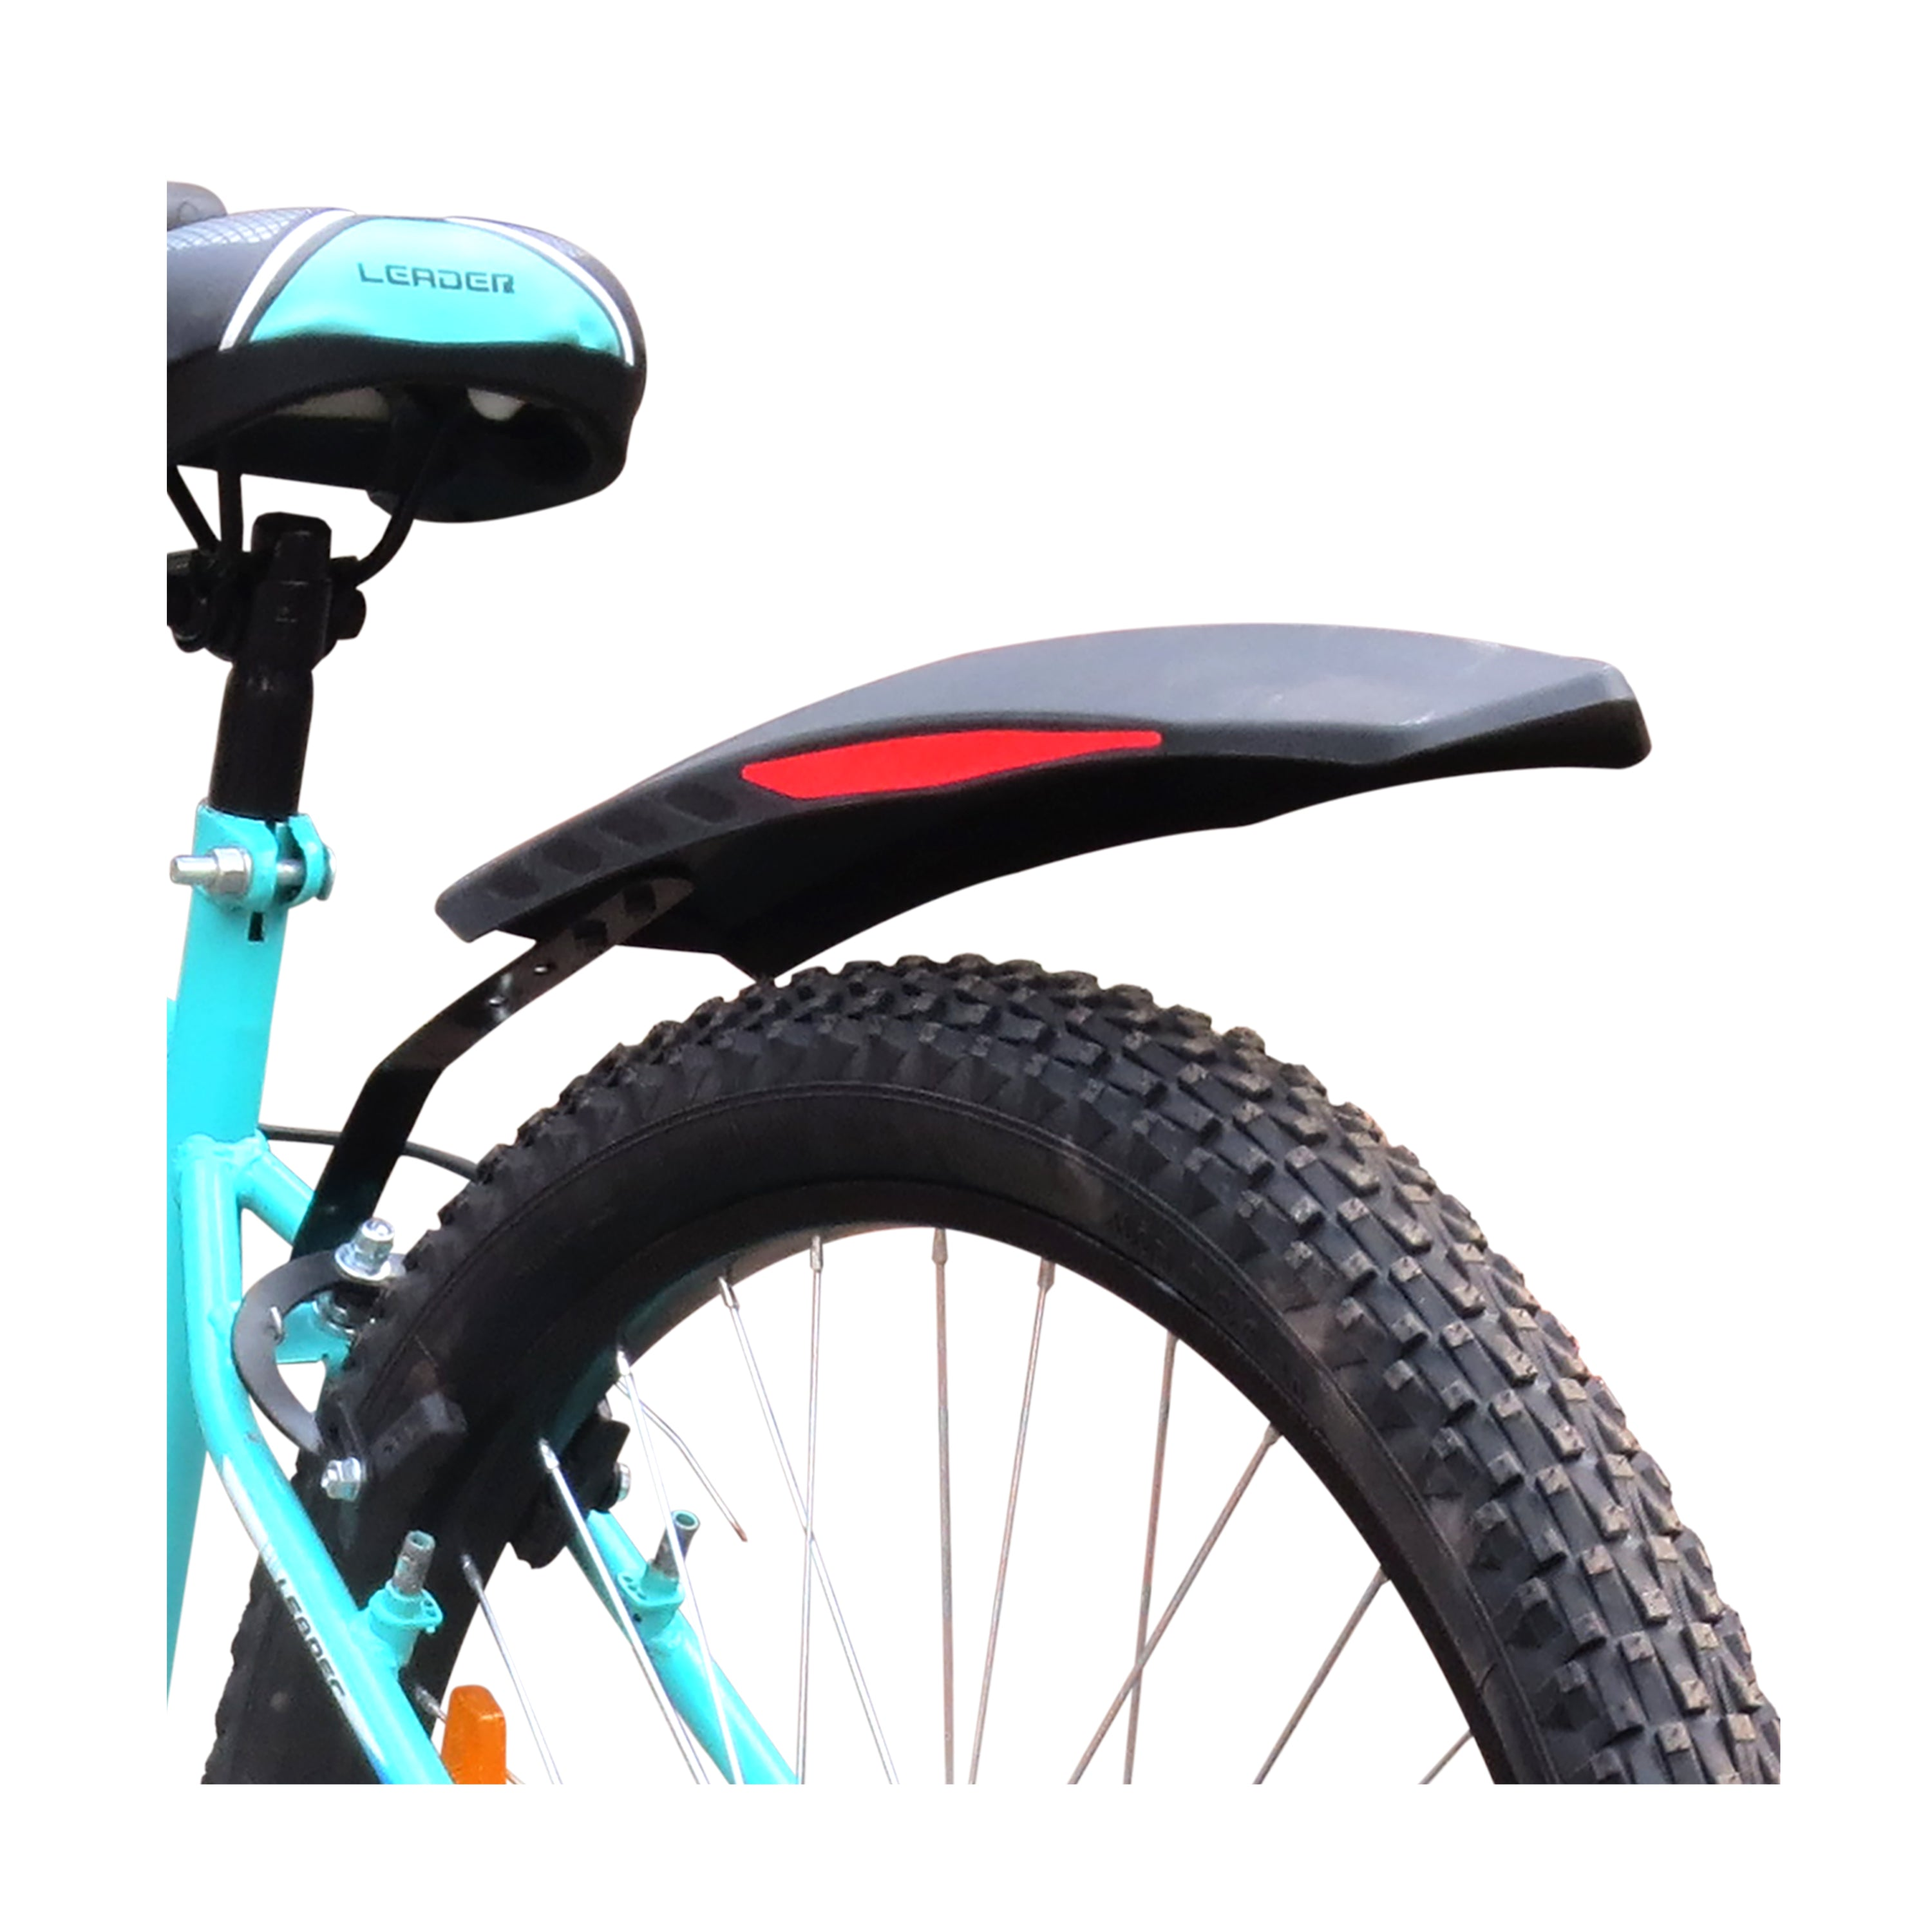 Leader Bicycle Mudguard with Reflective Tape for MTB Cycles